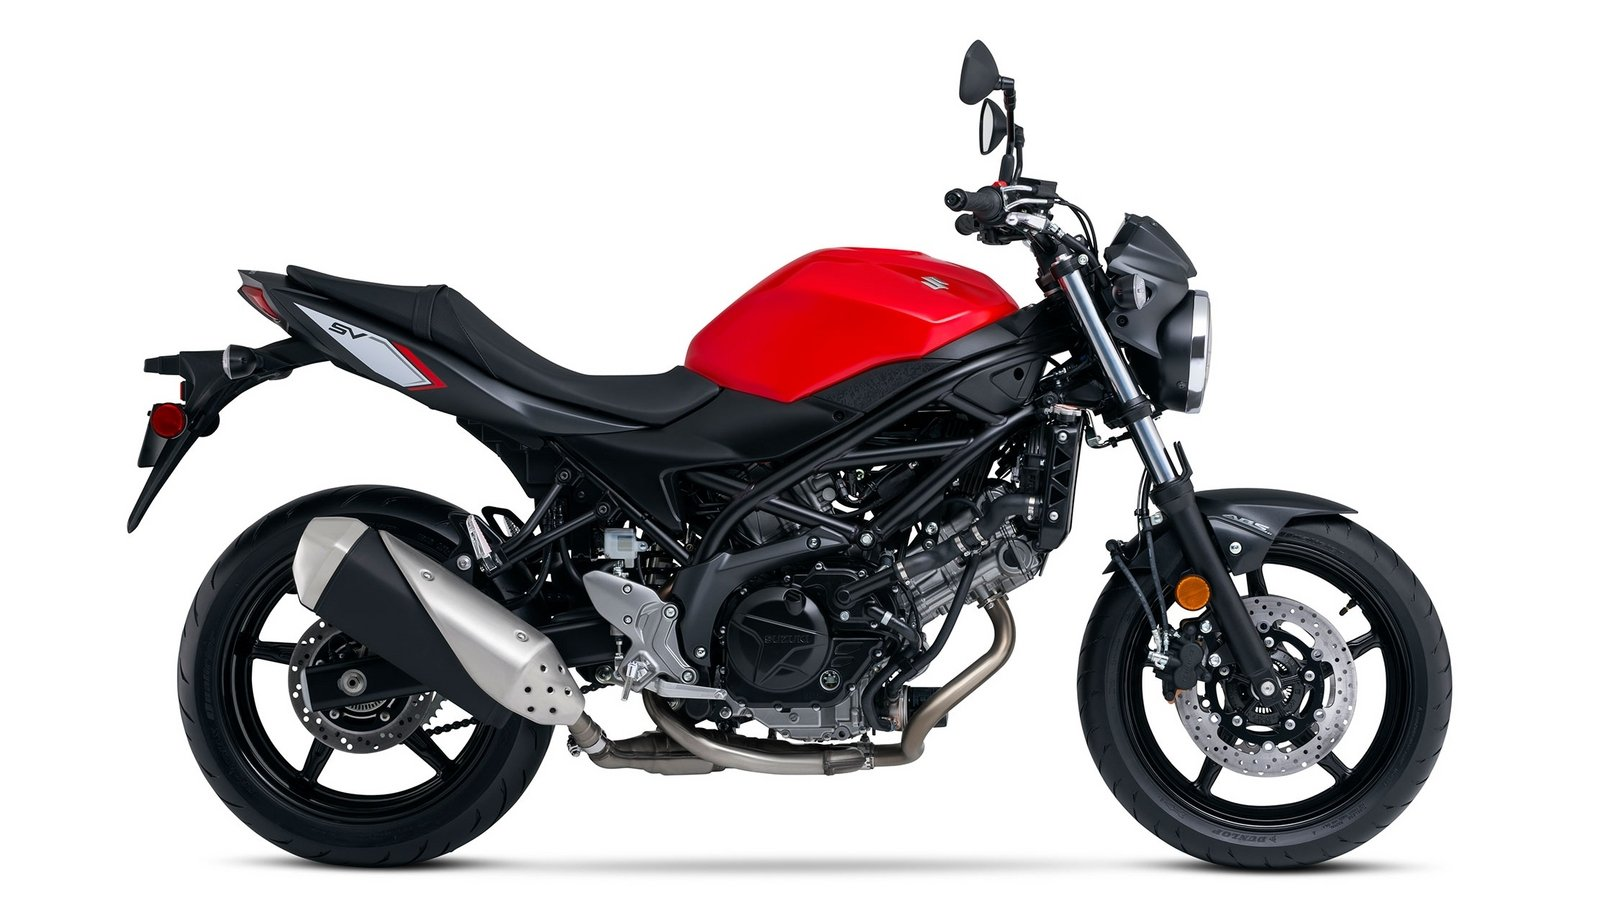 2017 suzuki sv650 abs picture 664035 motorcycle review top speed. Black Bedroom Furniture Sets. Home Design Ideas